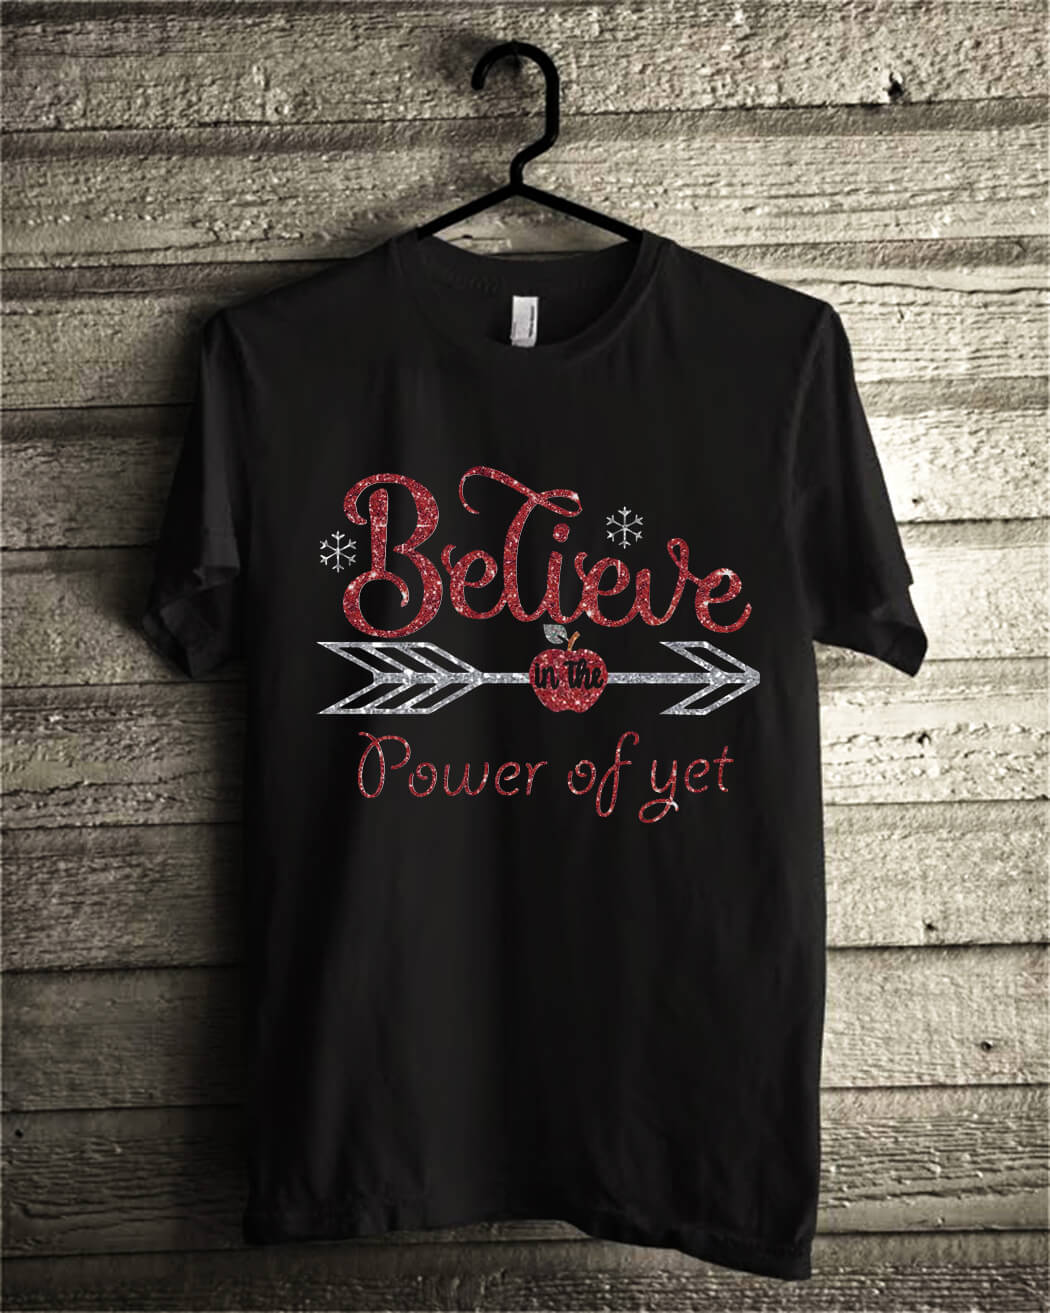 Believe in the power of yet shirt